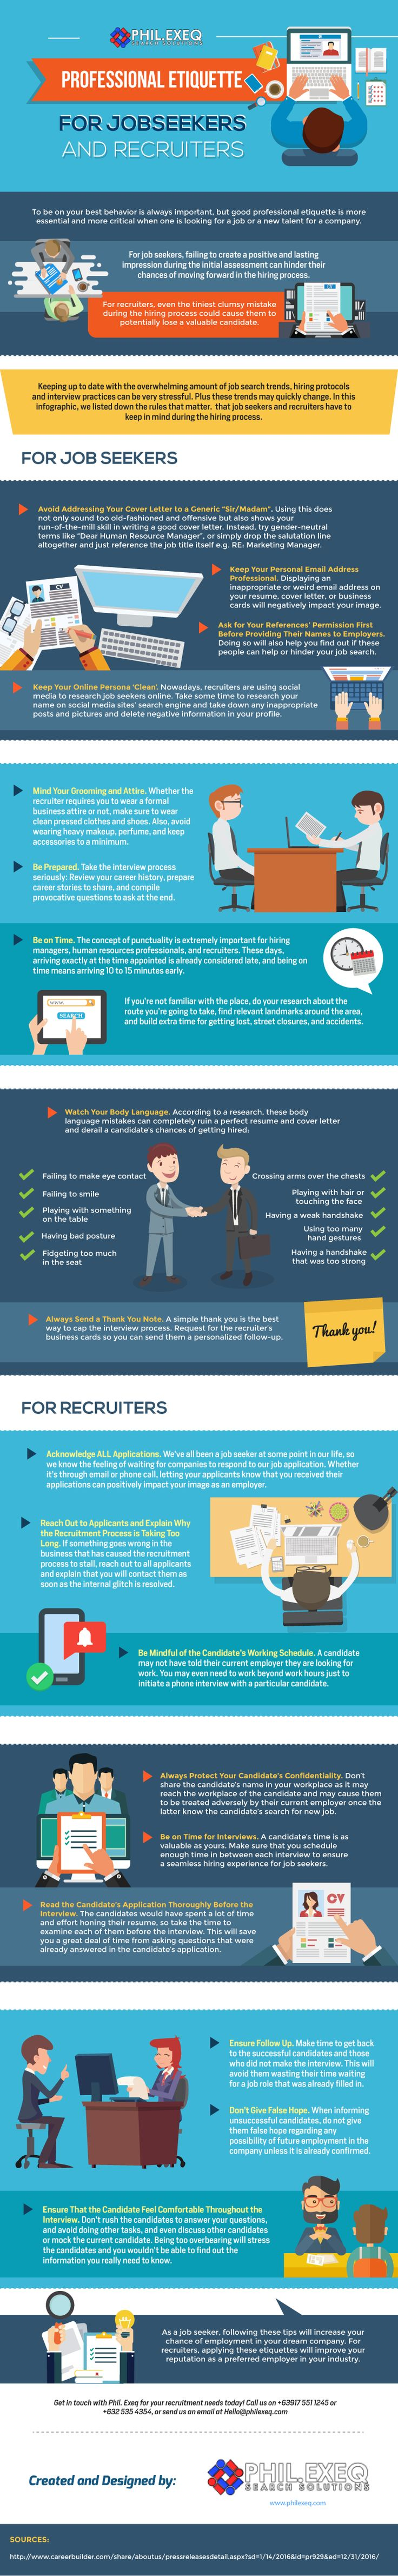 #infographic #jobsearch  Professional Etiquette for Jobseekers and Recruiters